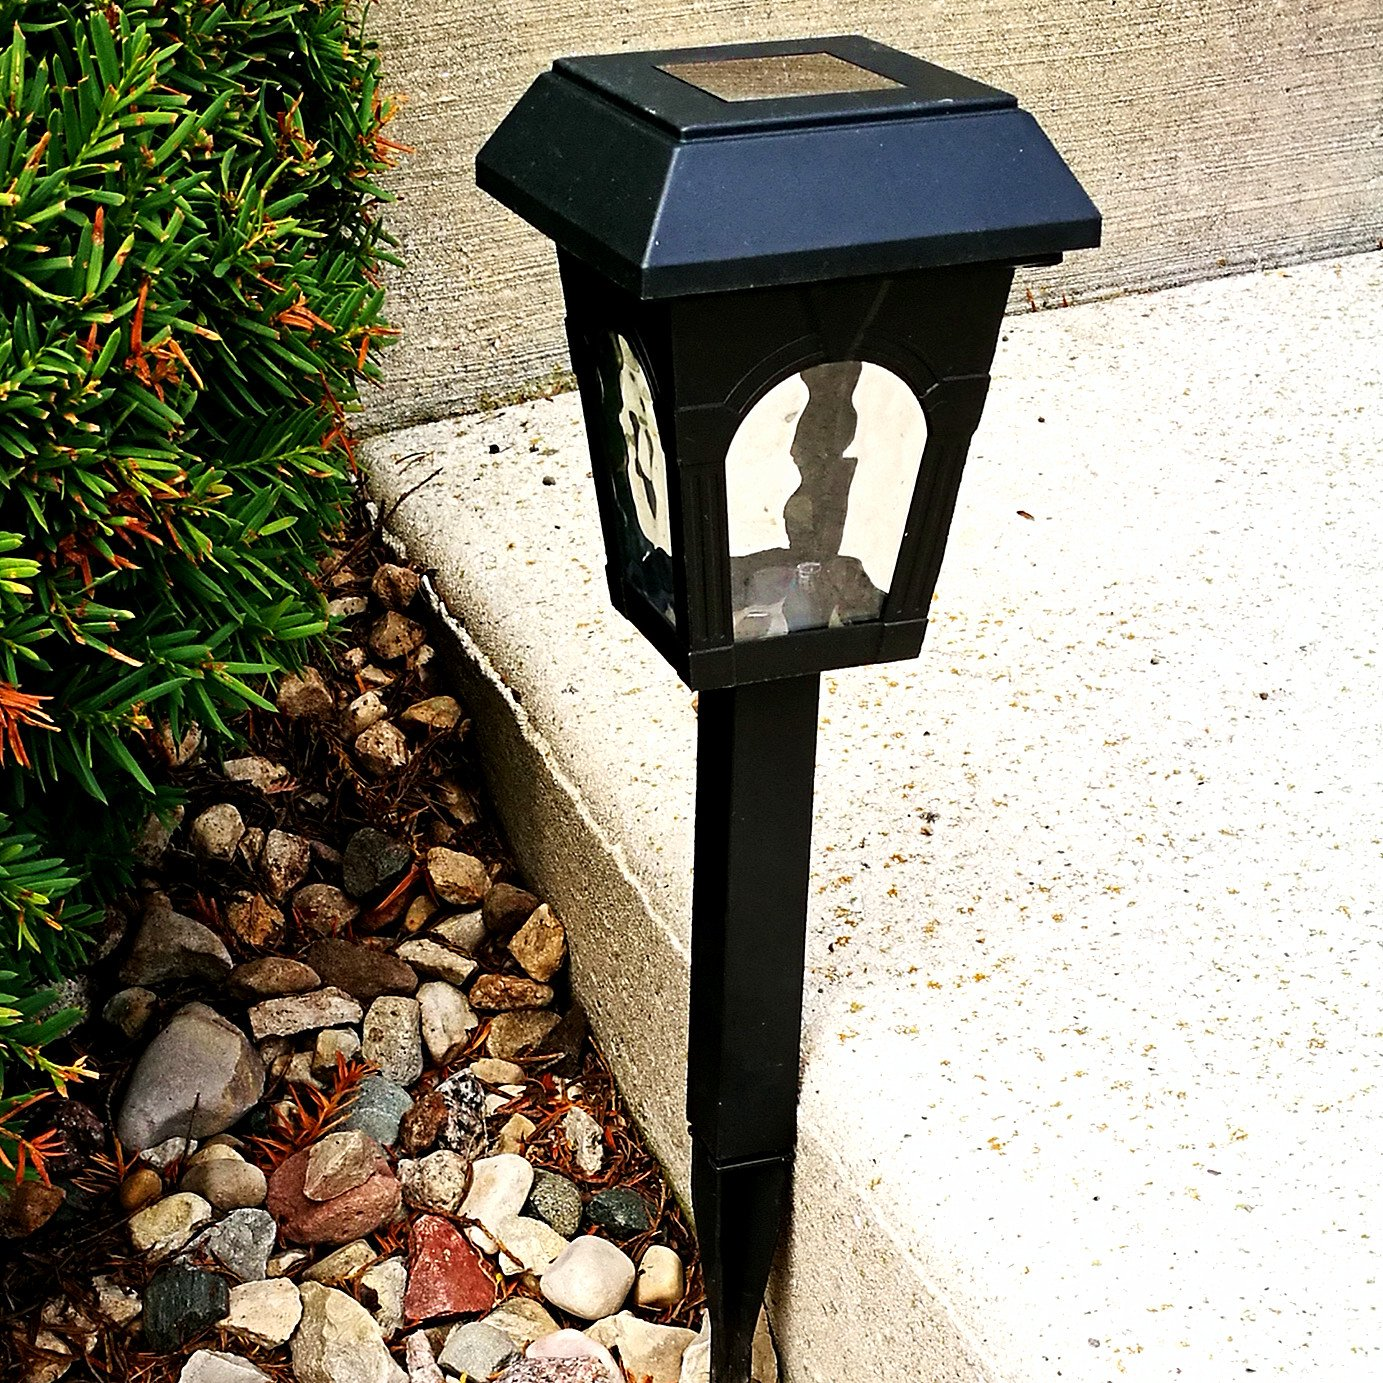 Driveway Solar Lights For Sale: 6Pack Classic Solar Lights For Walkway Sogrand Solar